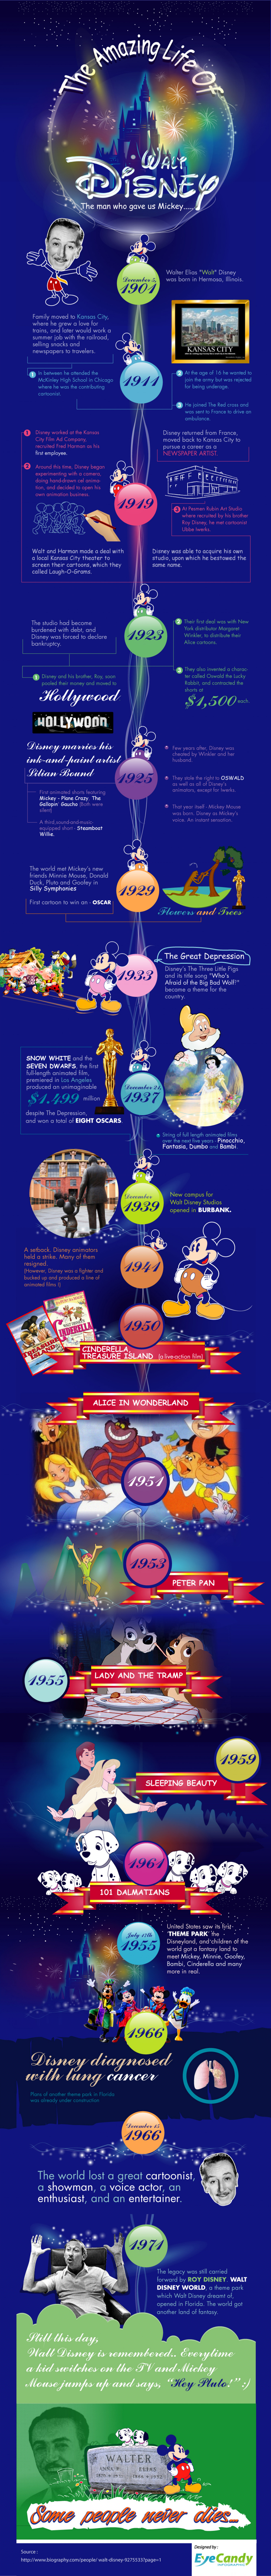 The Amazing Life of Walt Disney Infographic